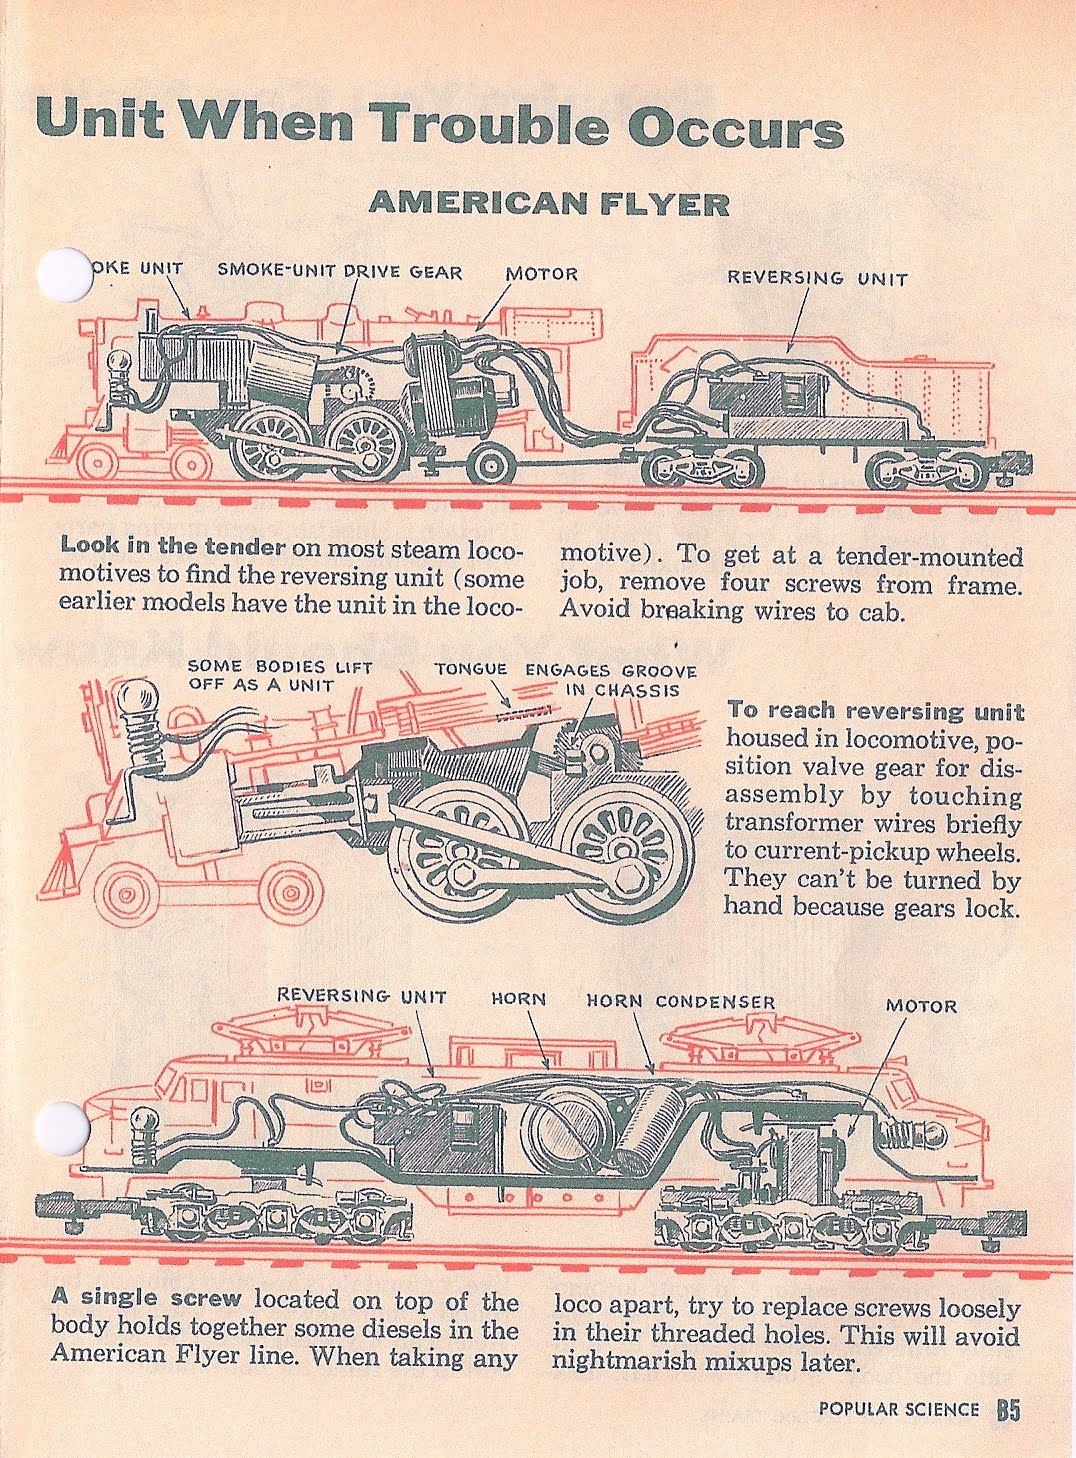 American Flyer Trains Wiring Diagrams http://az-flyer.blogspot.com/p/az-flyer-documents.html